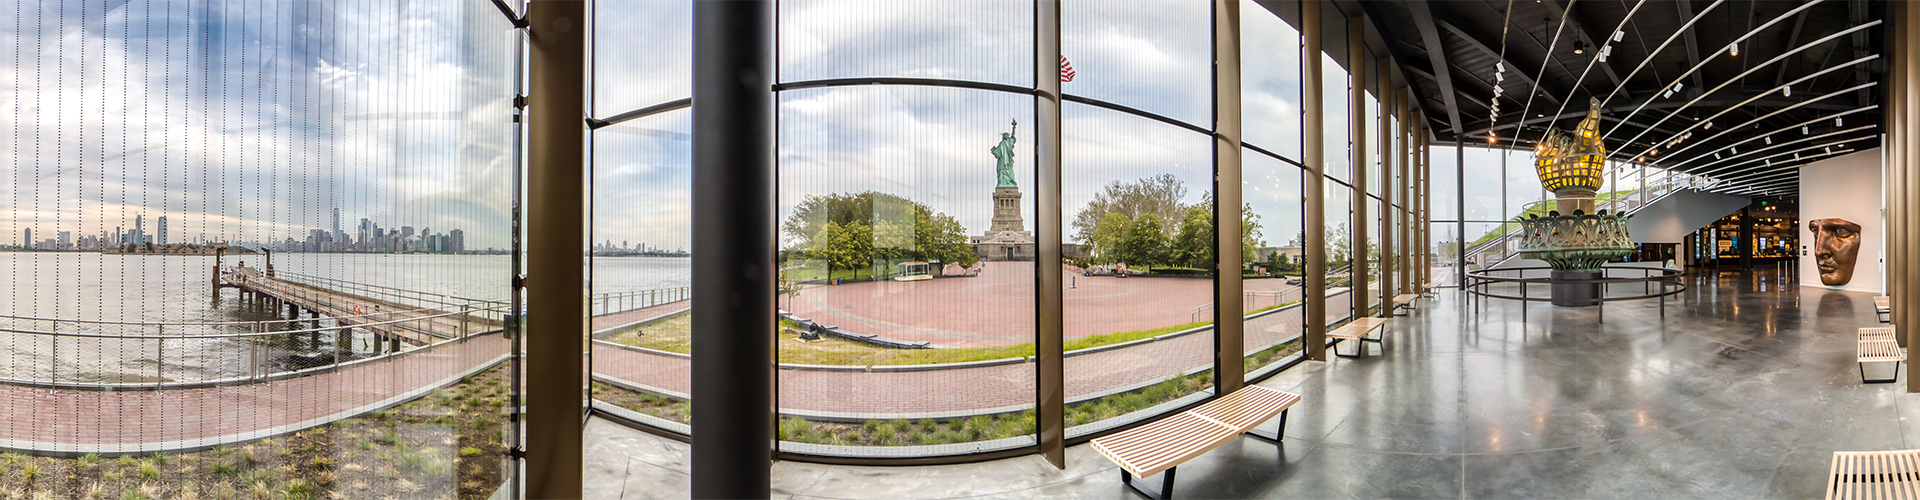 Liberty Island Events by 360SiteVisit